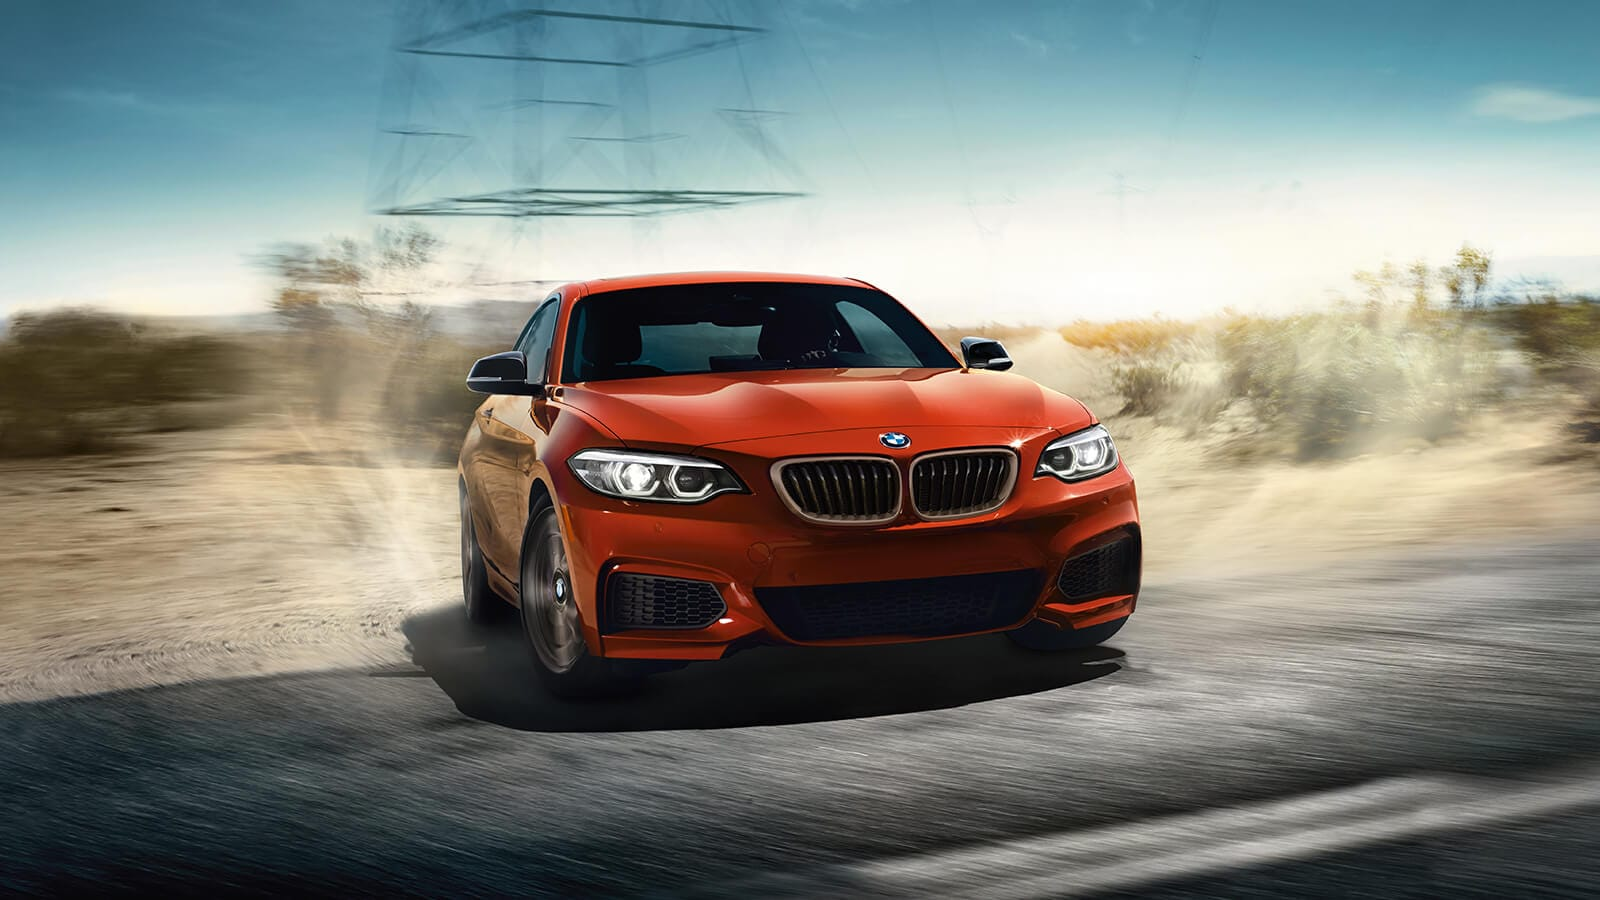 2020 BMW 2 Series M240i Orange Sunset Exterior Front View